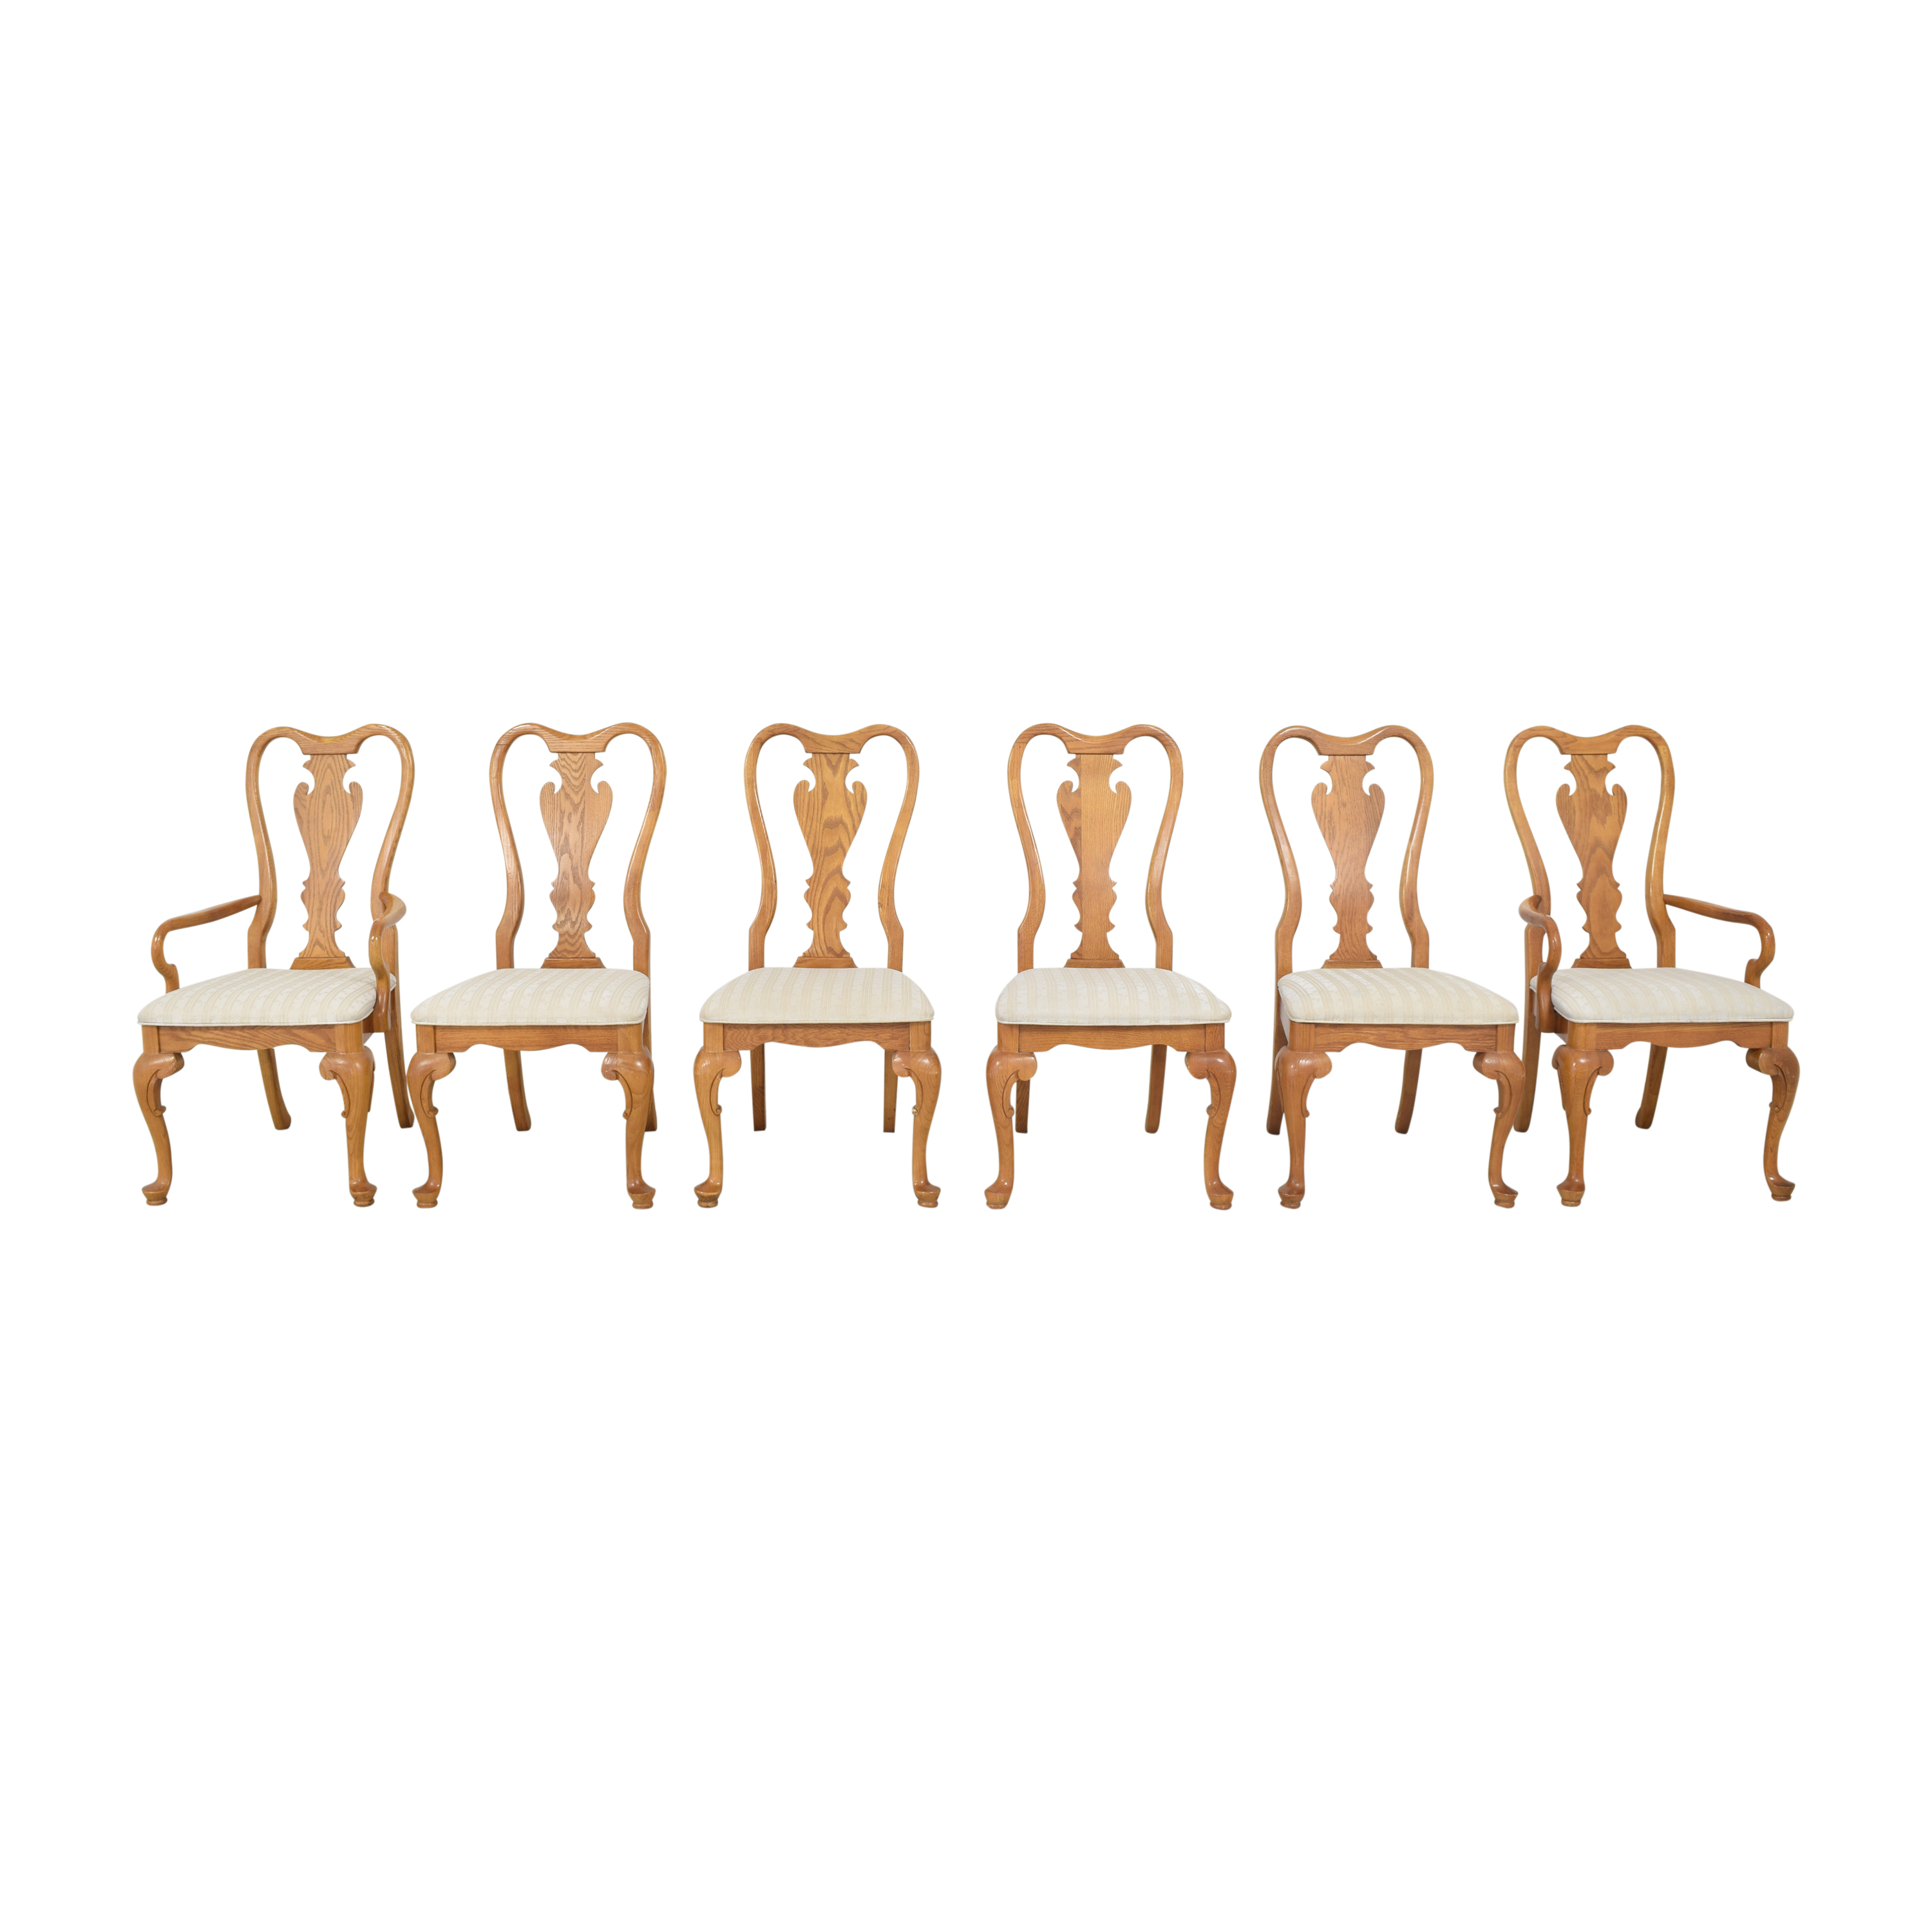 shop Sumter Cabinet Co. Sumter Cabinet Co. Dining Chairs online